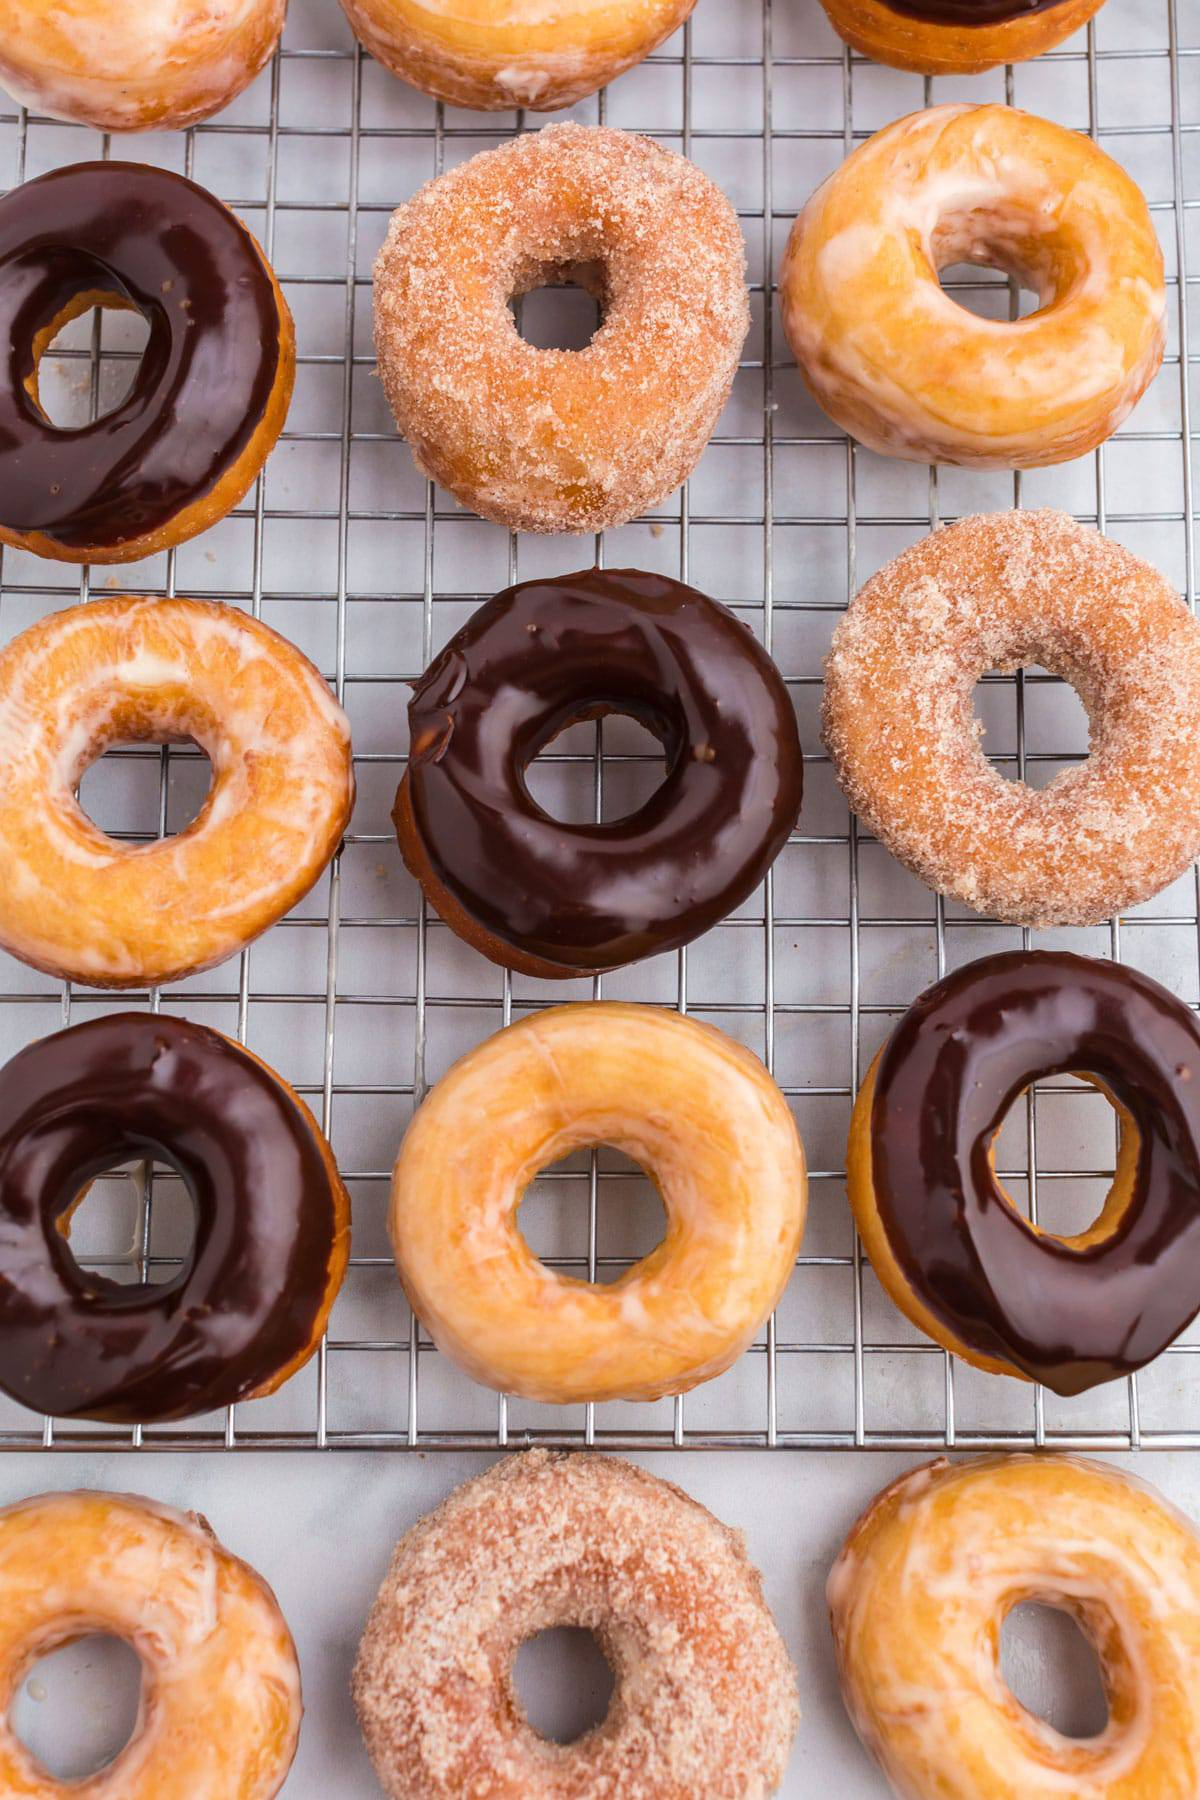 Raised donuts on a cooling rack